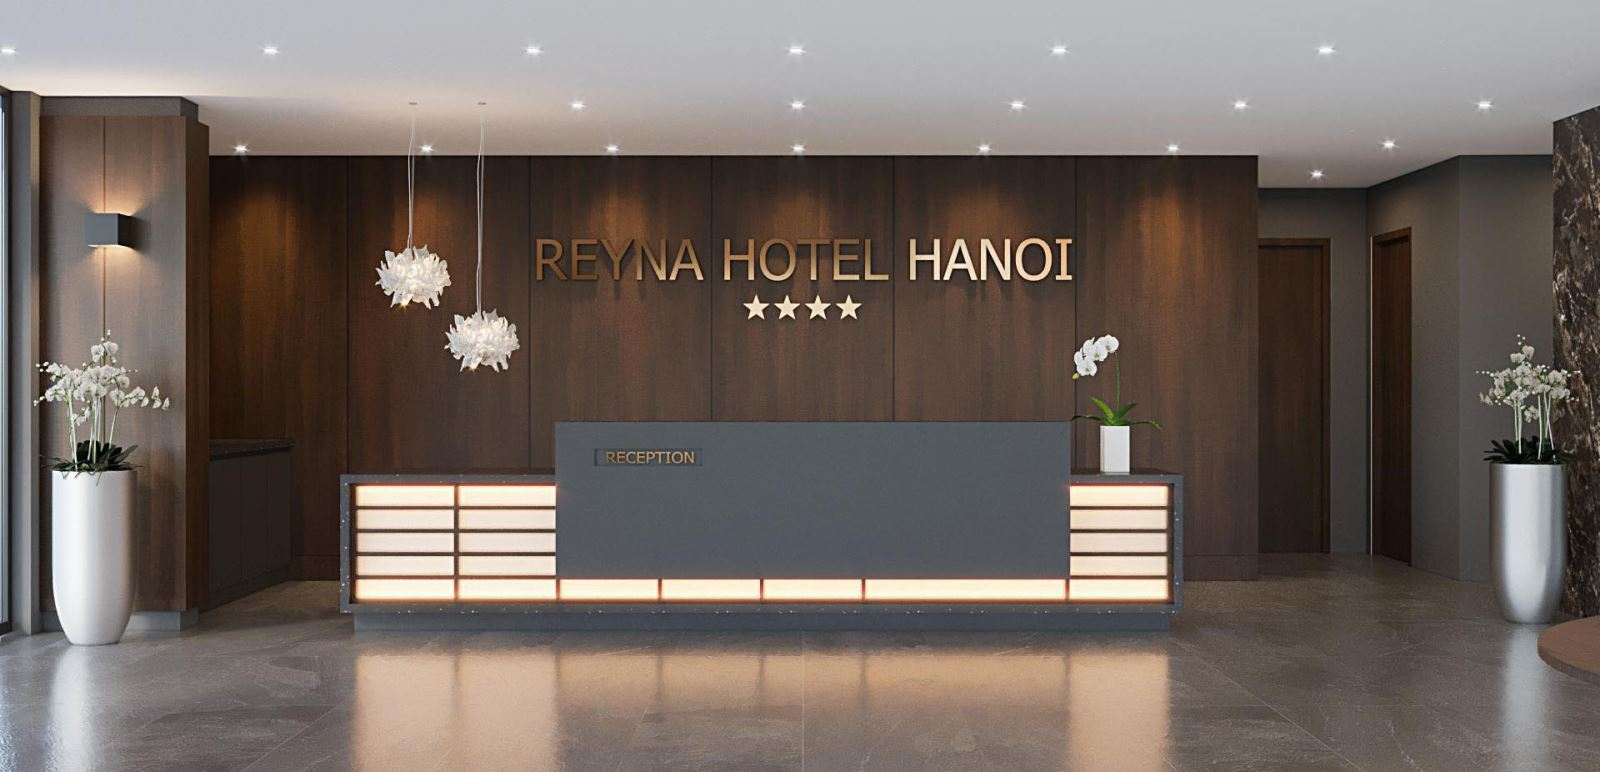 Welcome to Reyna Hotel Hanoi